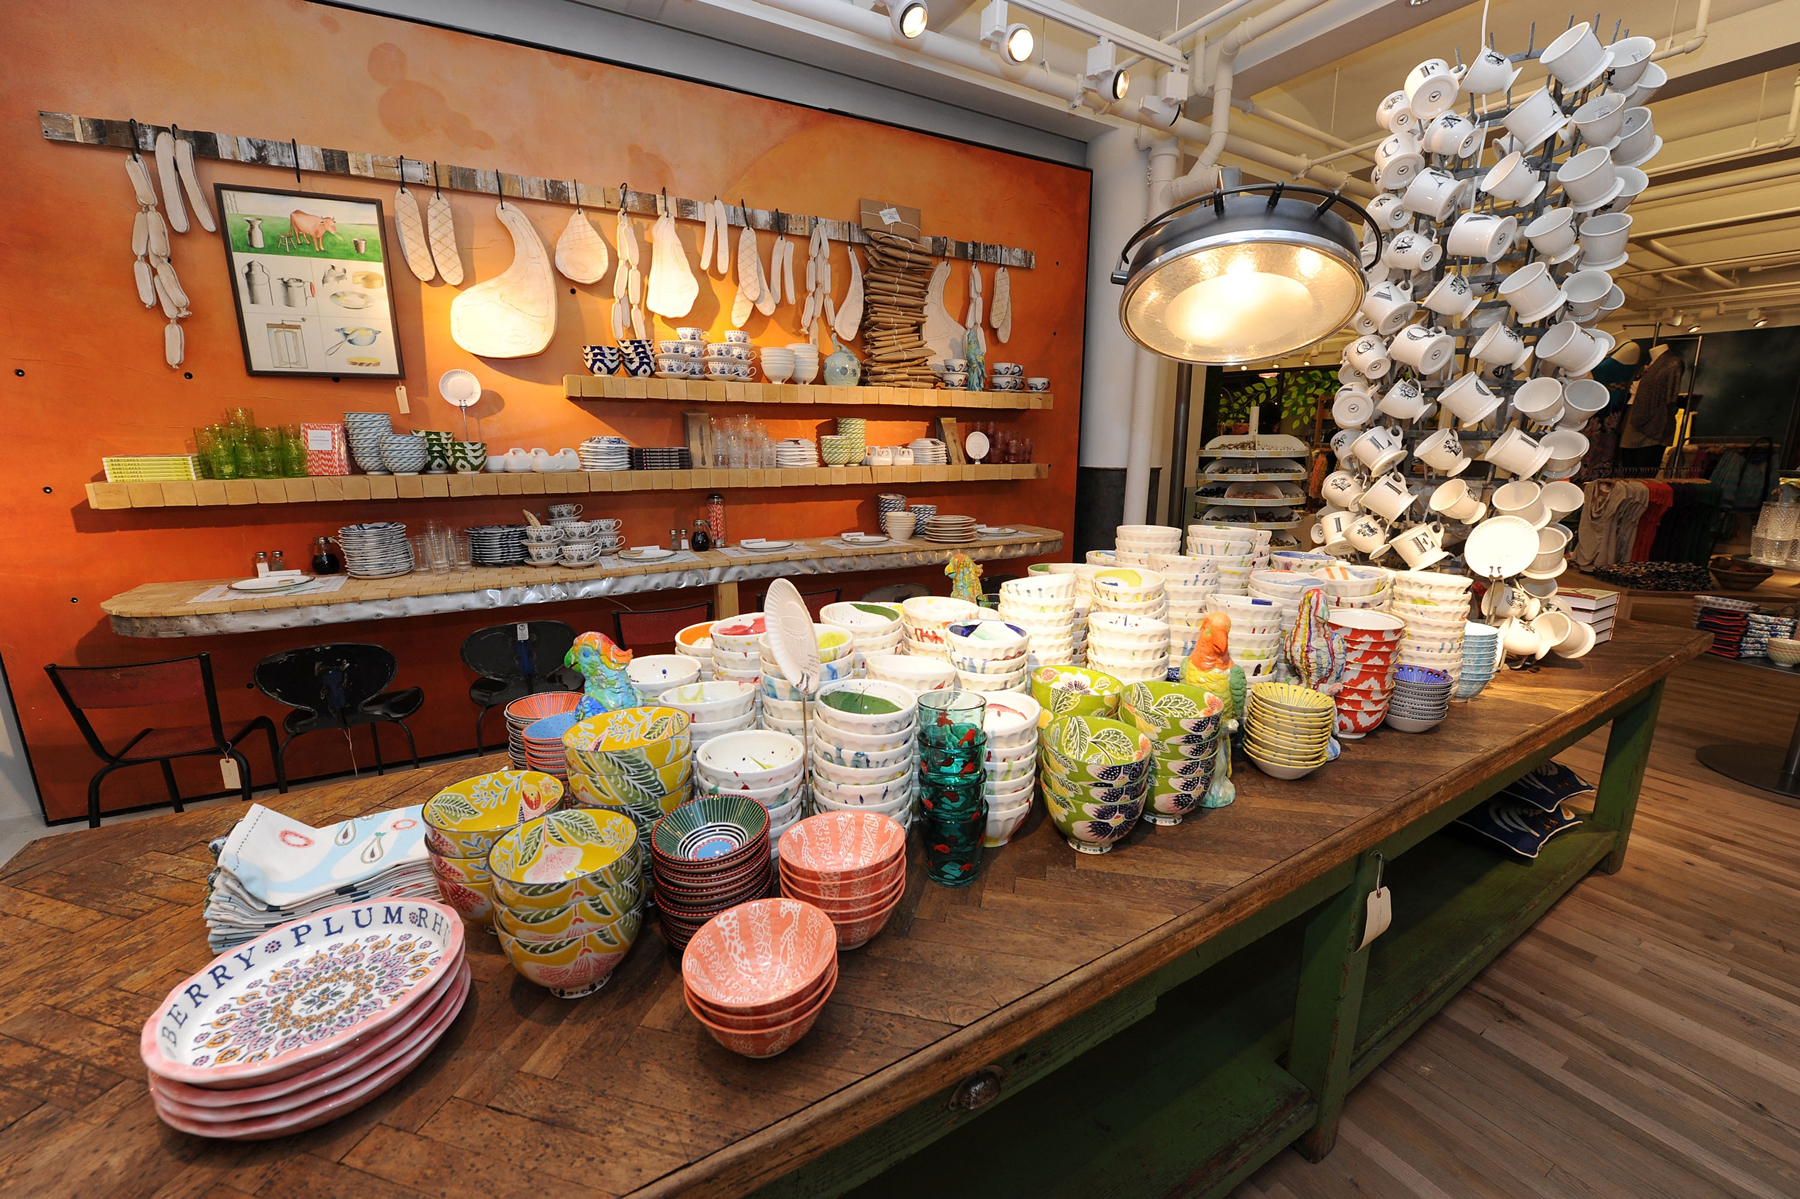 Anthropologie shopping secrets - Anthropologie home area in store